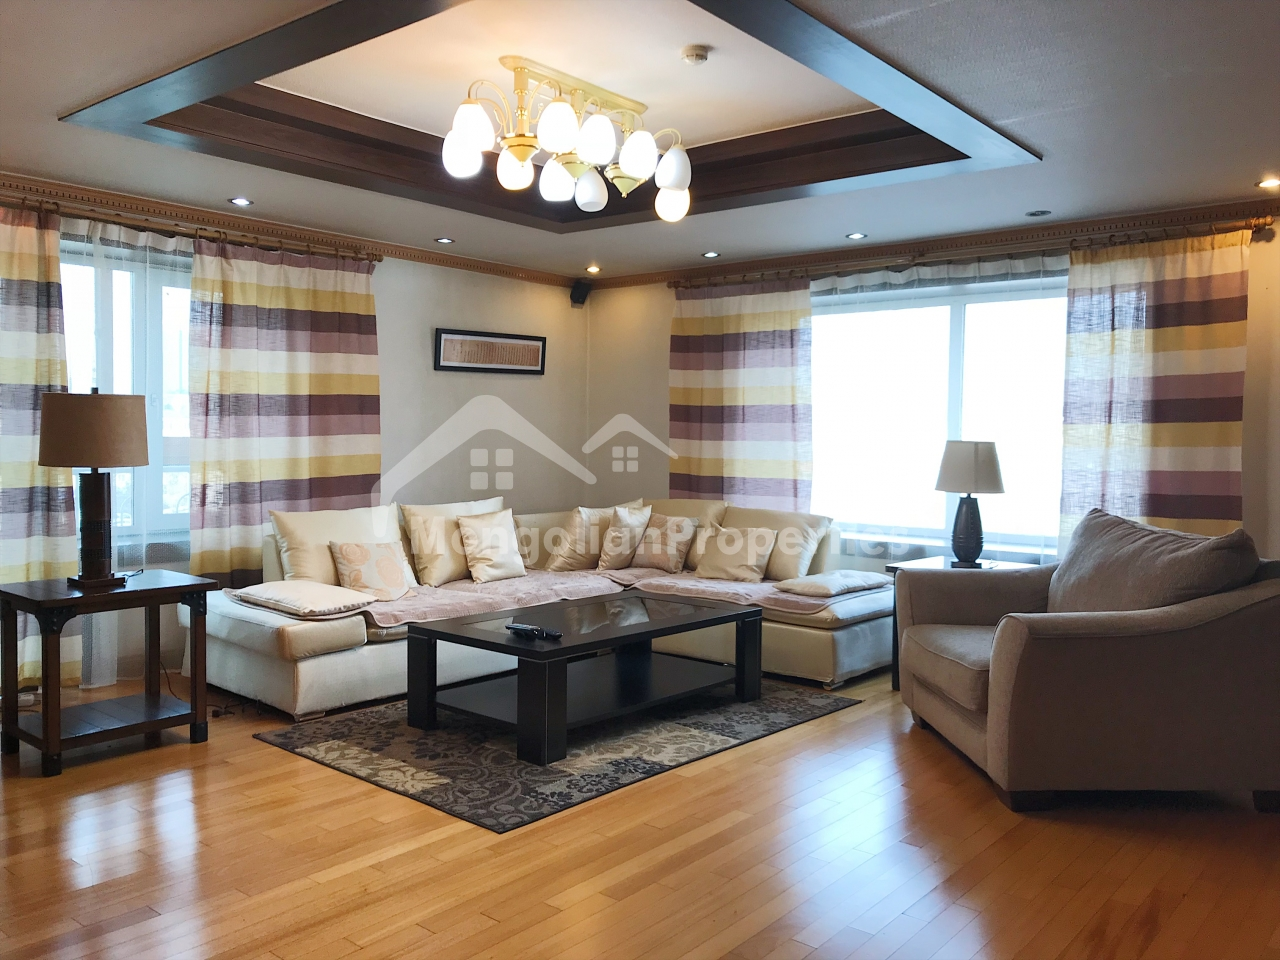 FOR RENT: Baruun Selbe 5/5, 148m2 3 bed and 2 bath apartment on the 2nd floor near State Department Store. View: Yavuukhulan park